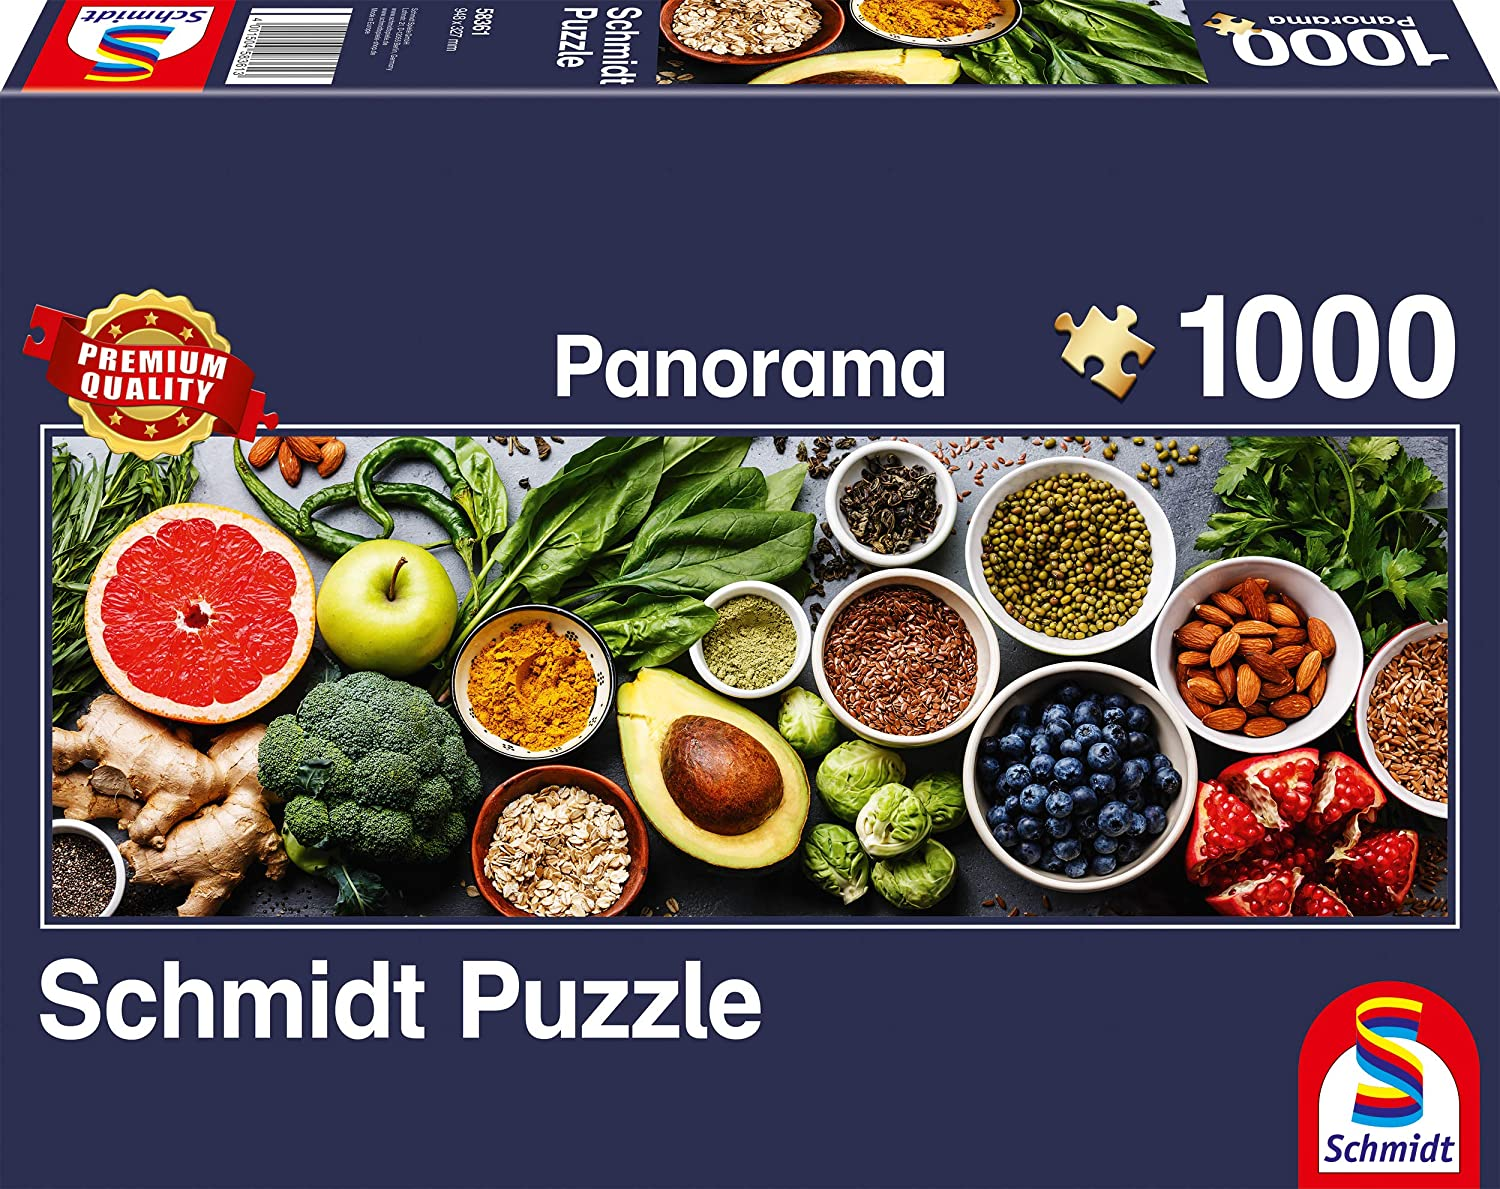 Schmidt Spiele Puzzles (1000): On the Kitchen Table